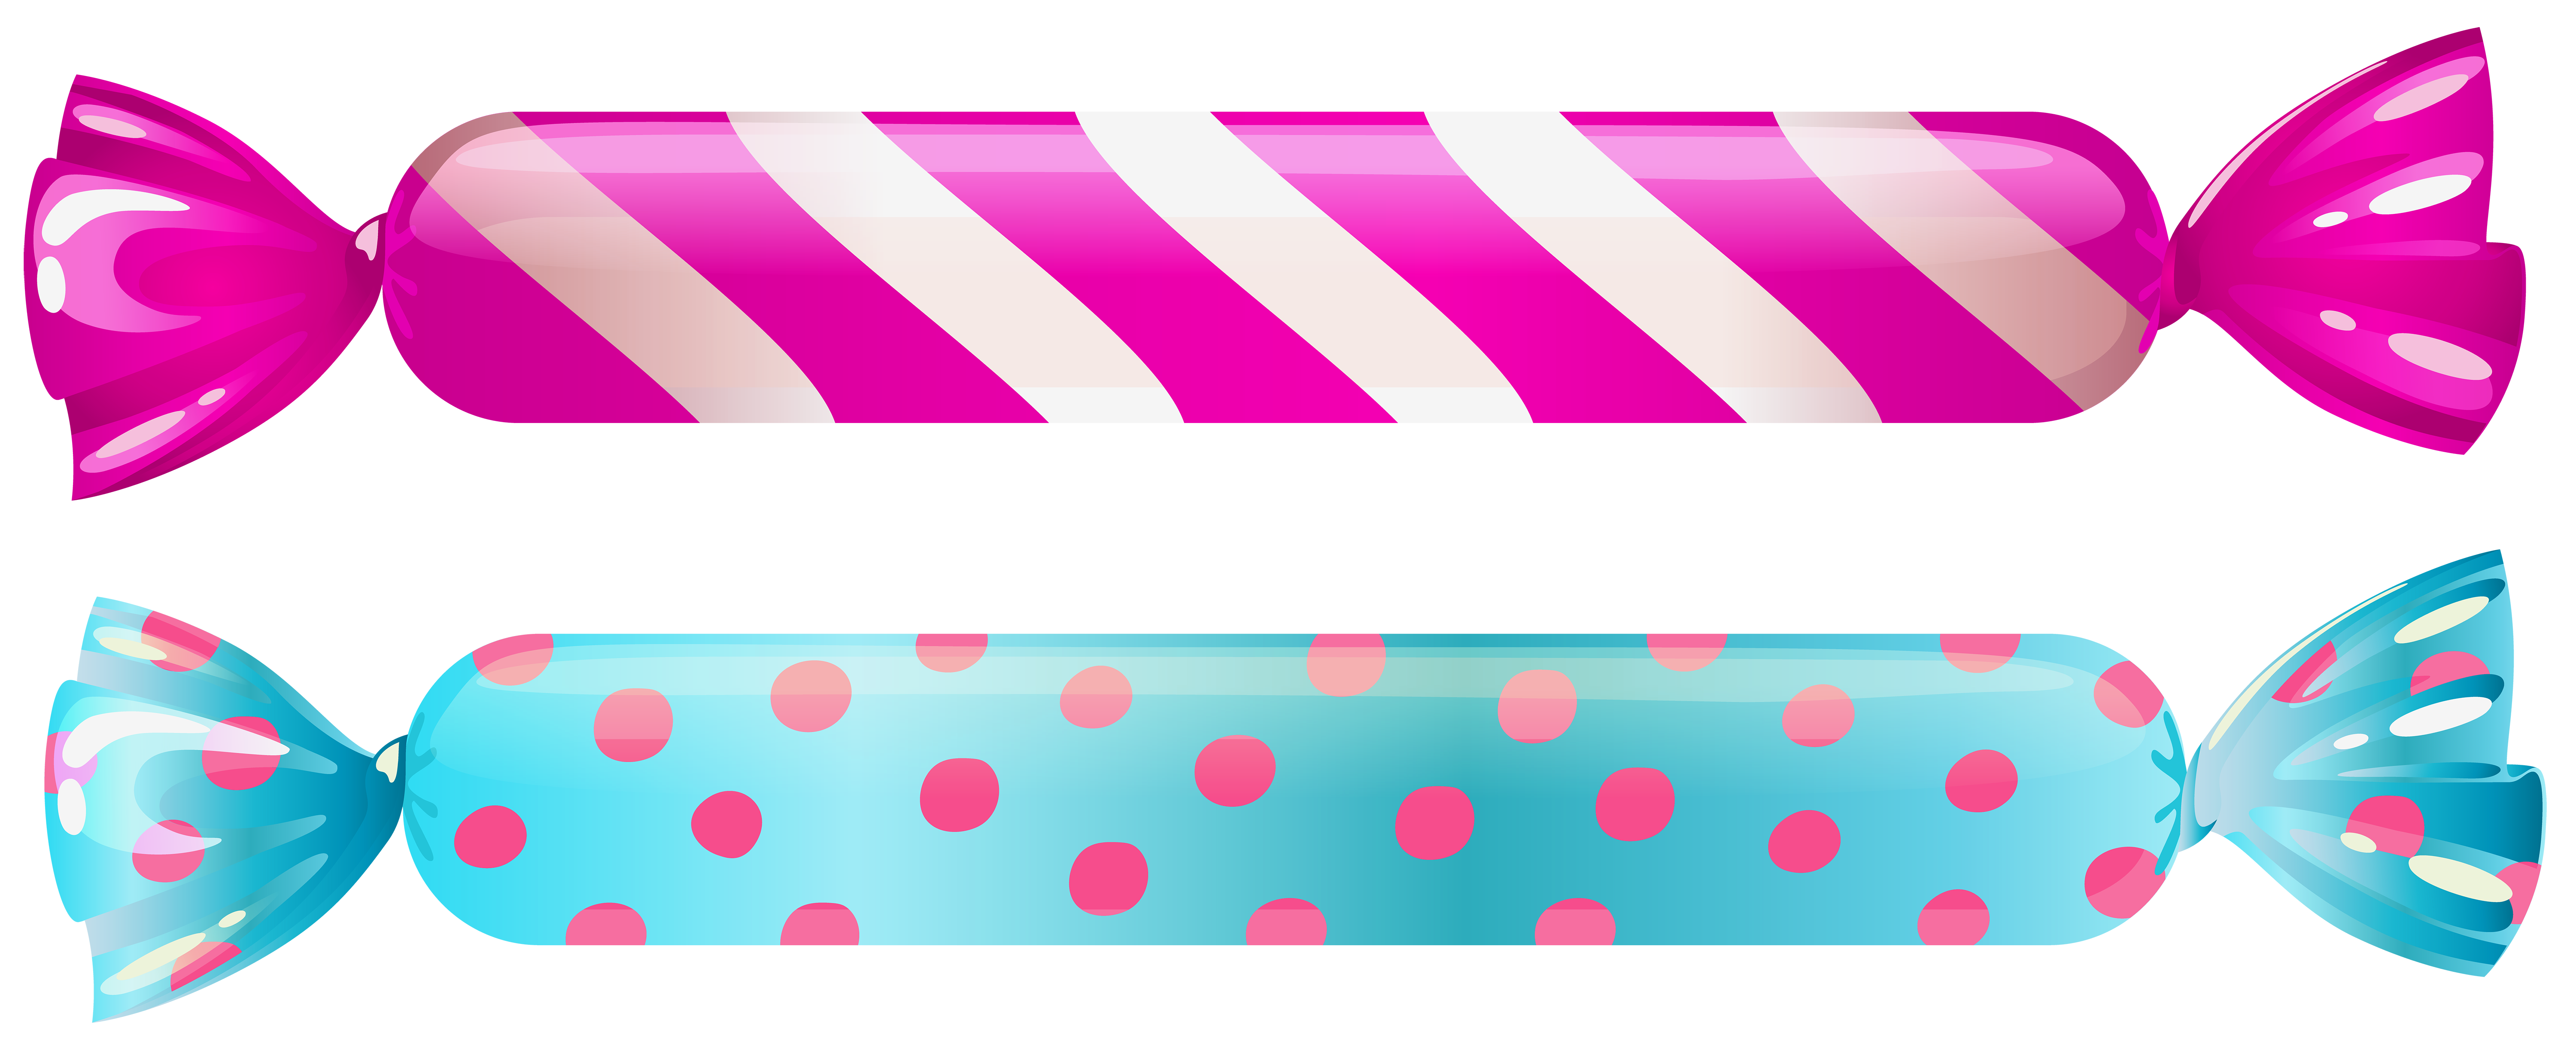 Candy clip art png. Image gallery yopriceville high